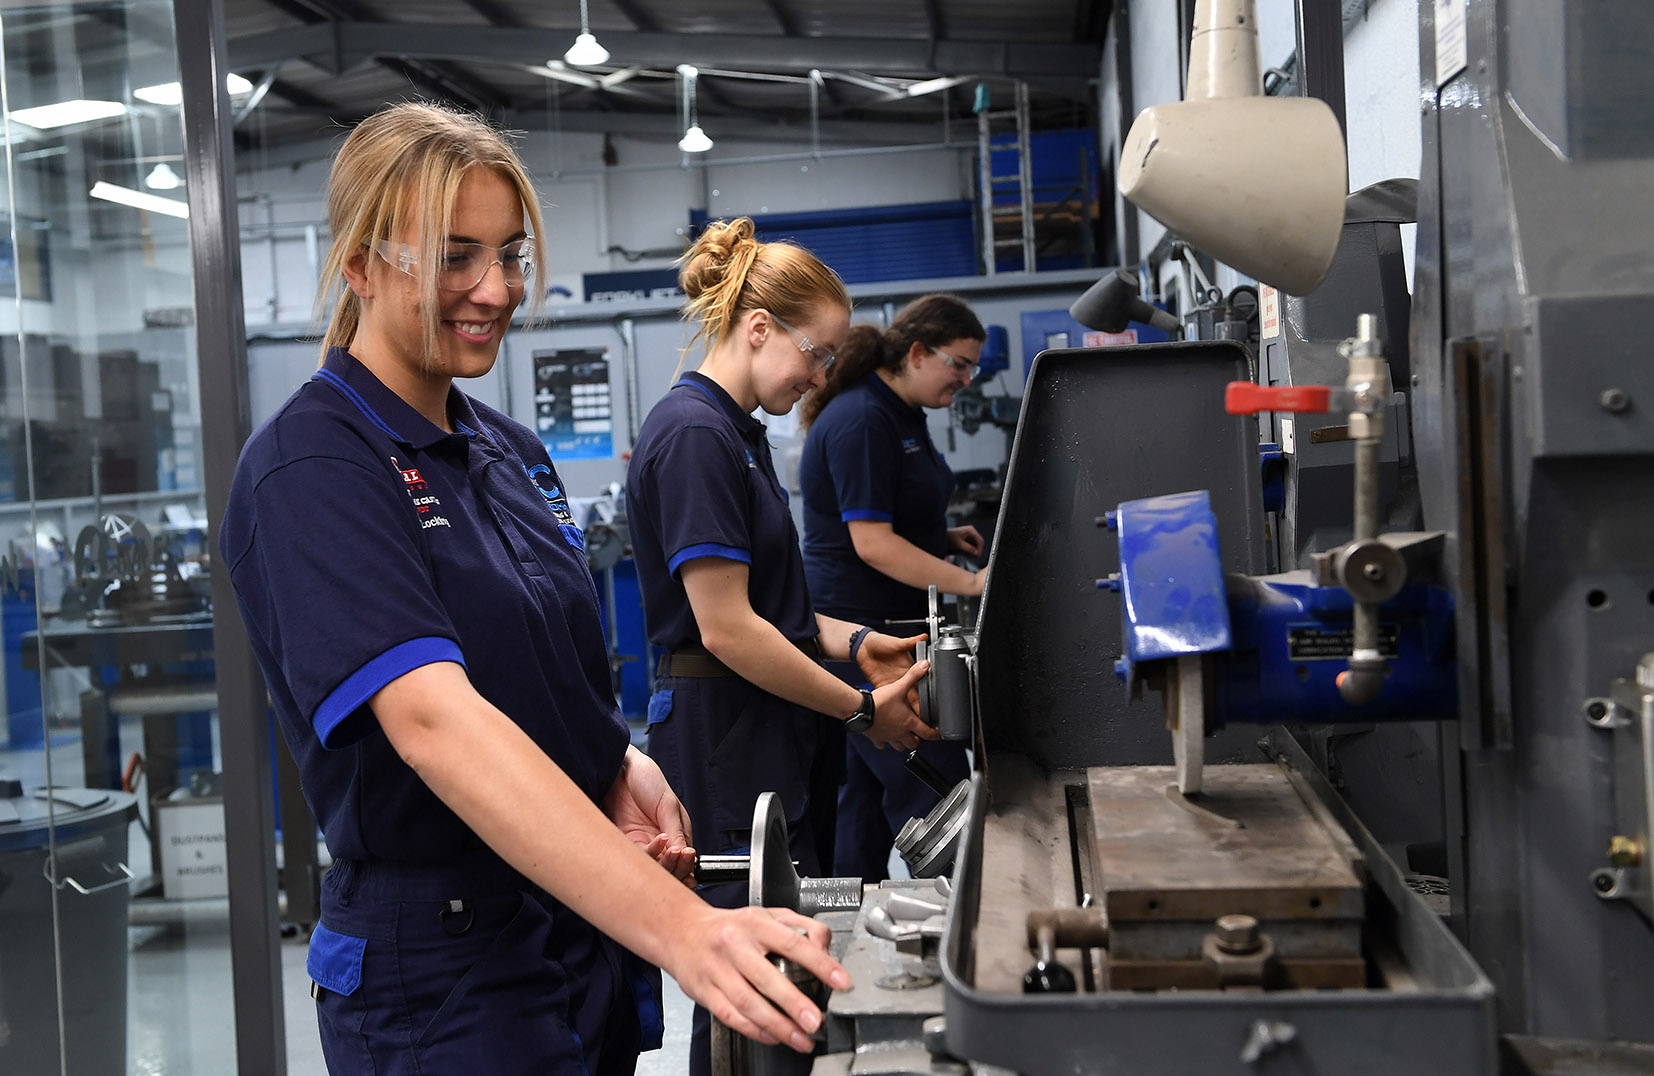 Manufacturers back apprenticeship investment despite pandemic - HK Technologies / In-Comm